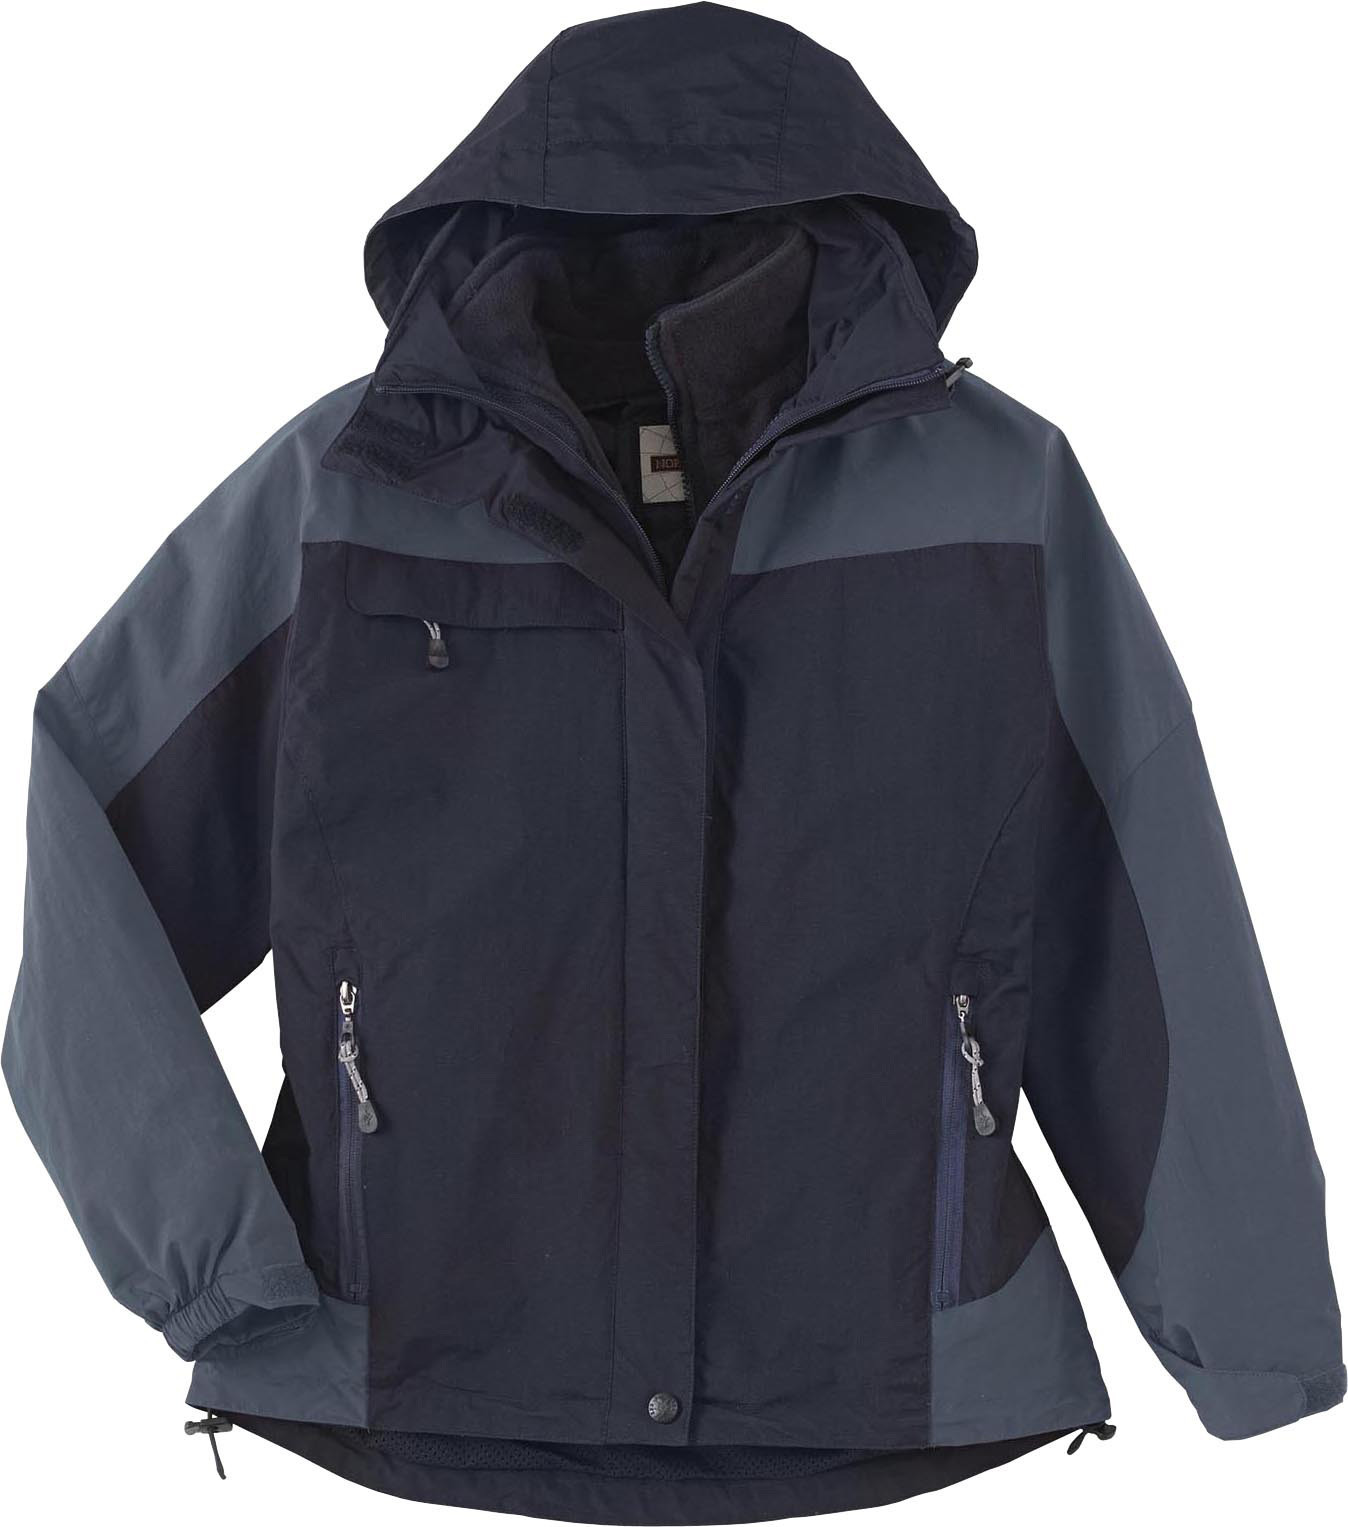 Ash City UTK 2 Warm.Logik 78038 - Ladies' 3-In-1 Mid-Length Jacket